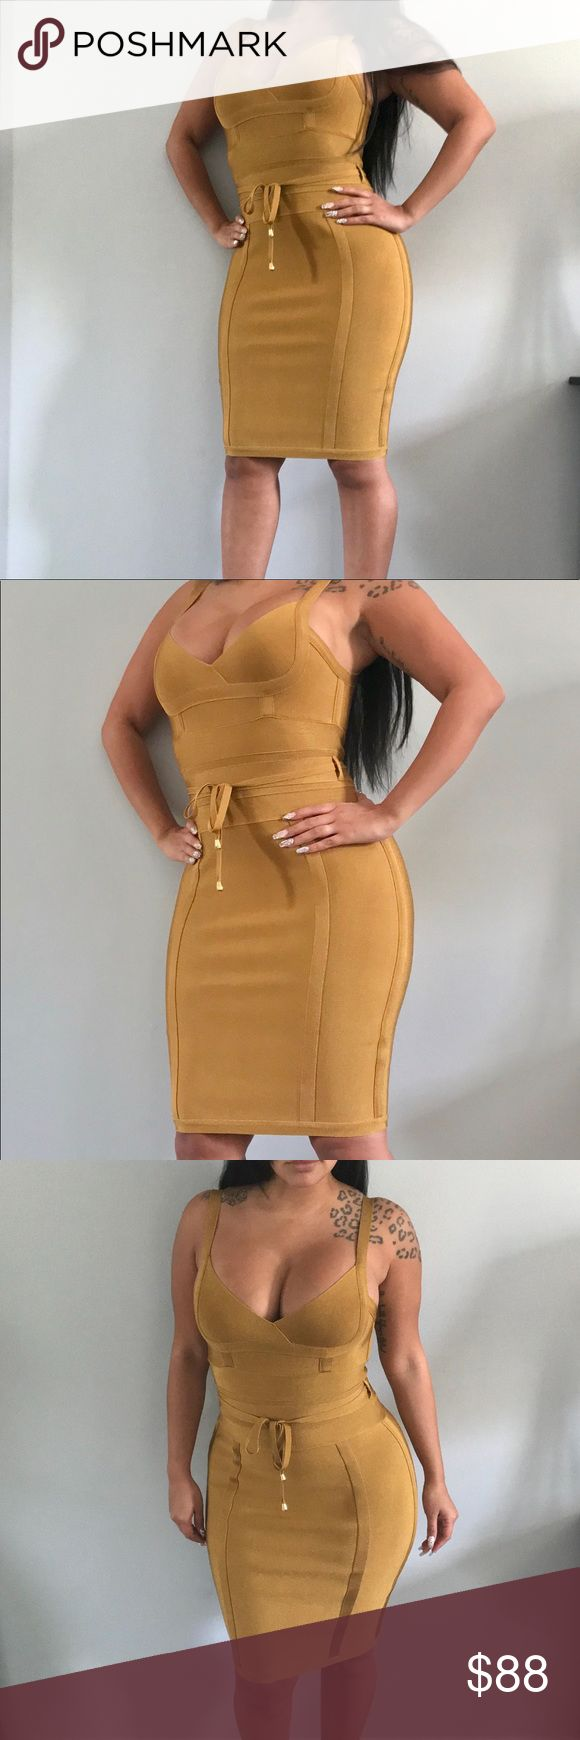 "The ""Melissa"" 💎Mustard Bandage Dress💎 💎Also Available in color Rust💎 💎Available in size: S, M, L💎 💎Premium Quality💎 💎Please refer to size chart for correct sizing💎 💎NO Offers/Trades💎 💎ALL SALES ARE FINAL💎 Chic By Nathalie Dresses Mini"